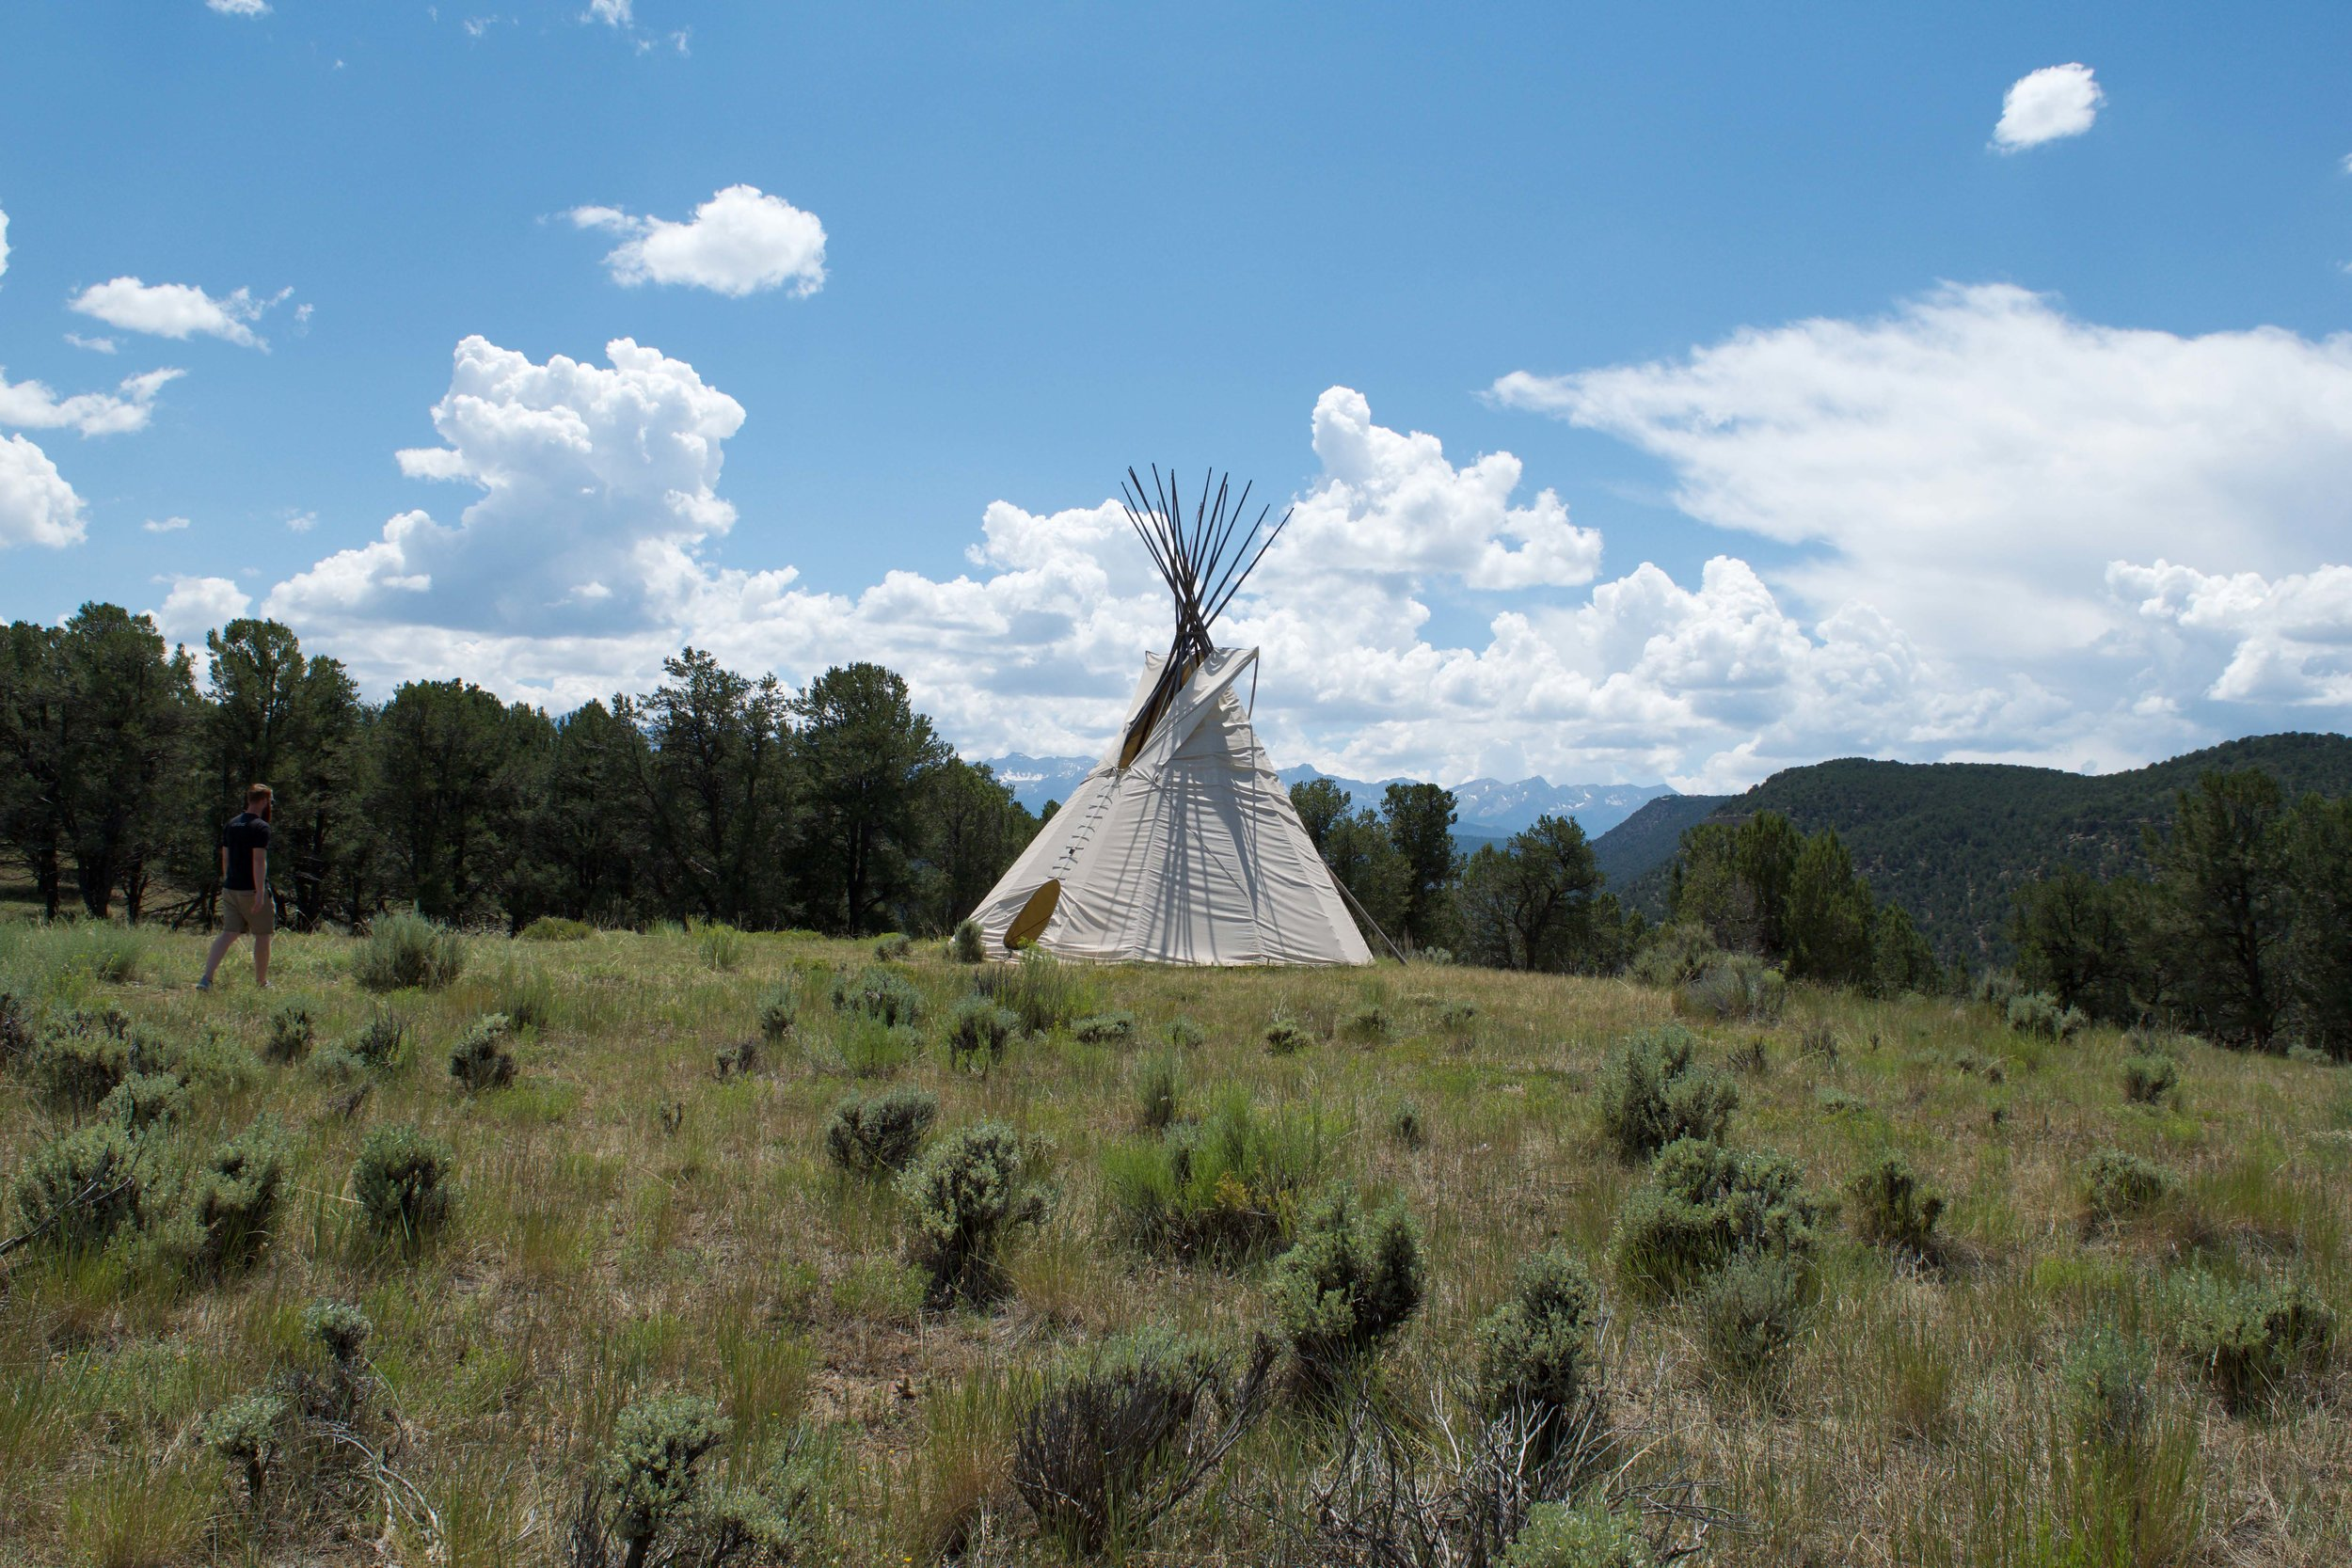 Learn more about the Ute People on the Discovery Nature Trail at Ridgway State Park.